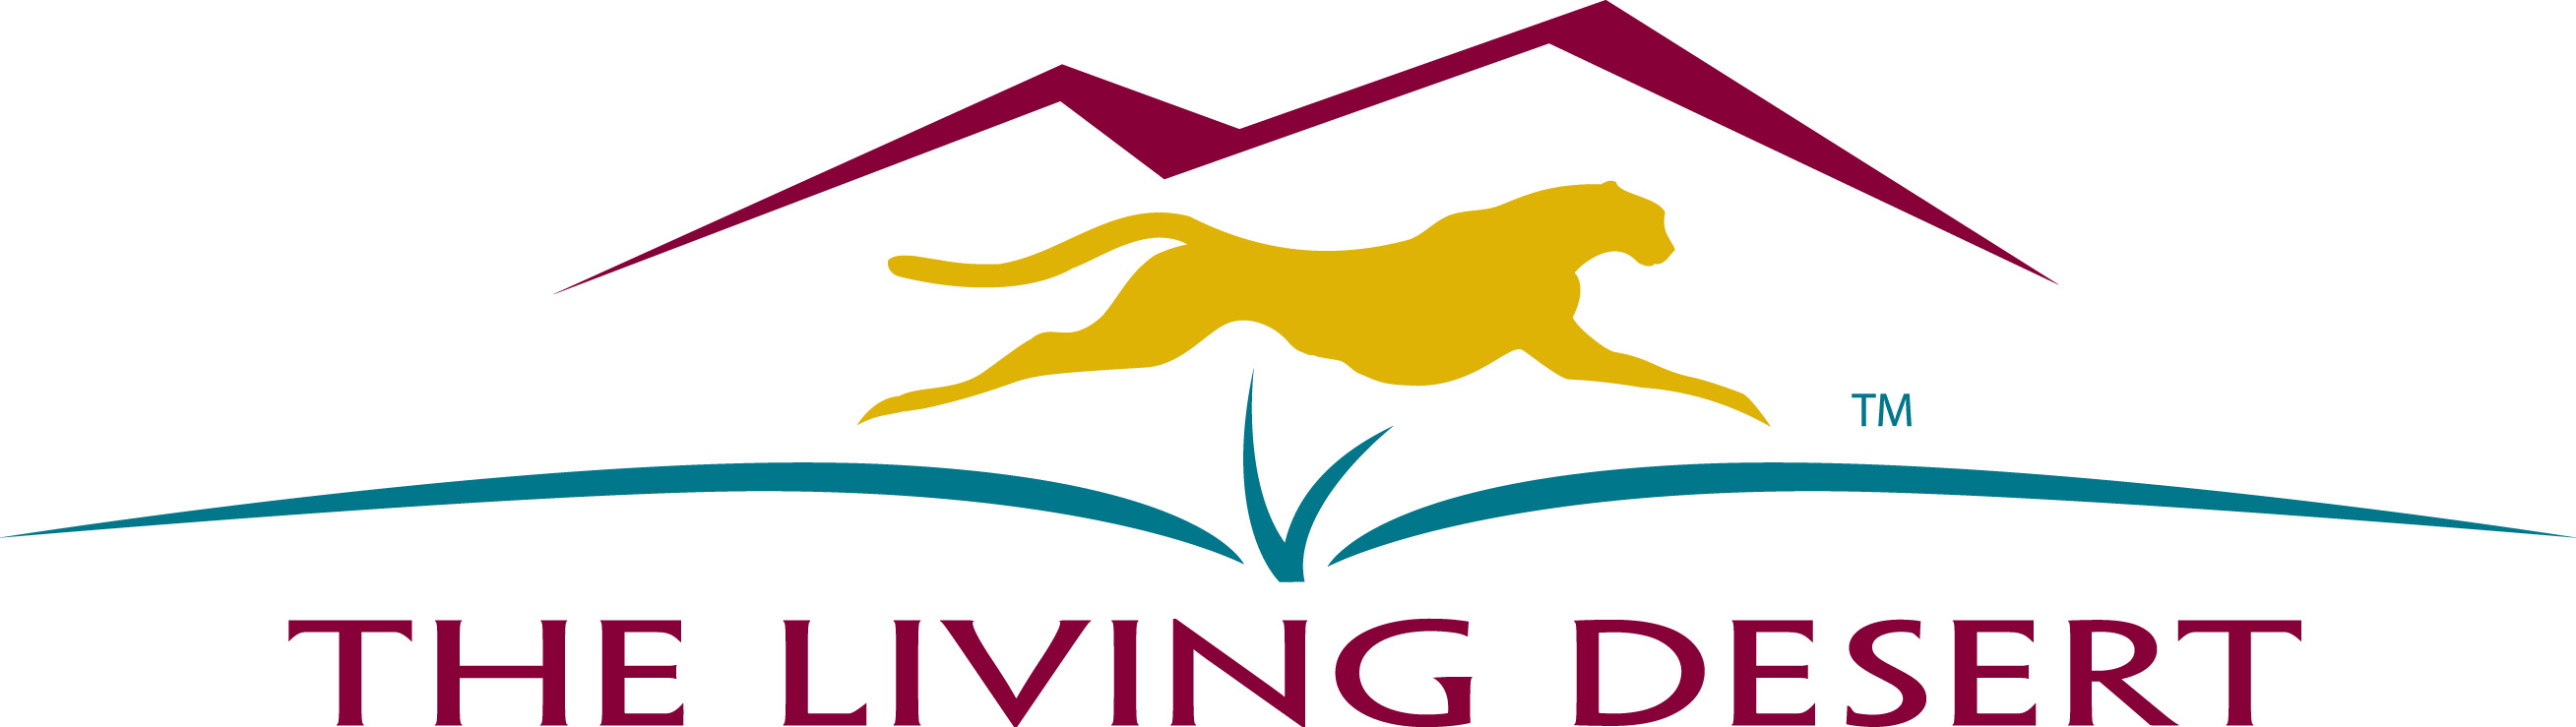 The Living Desert Logo